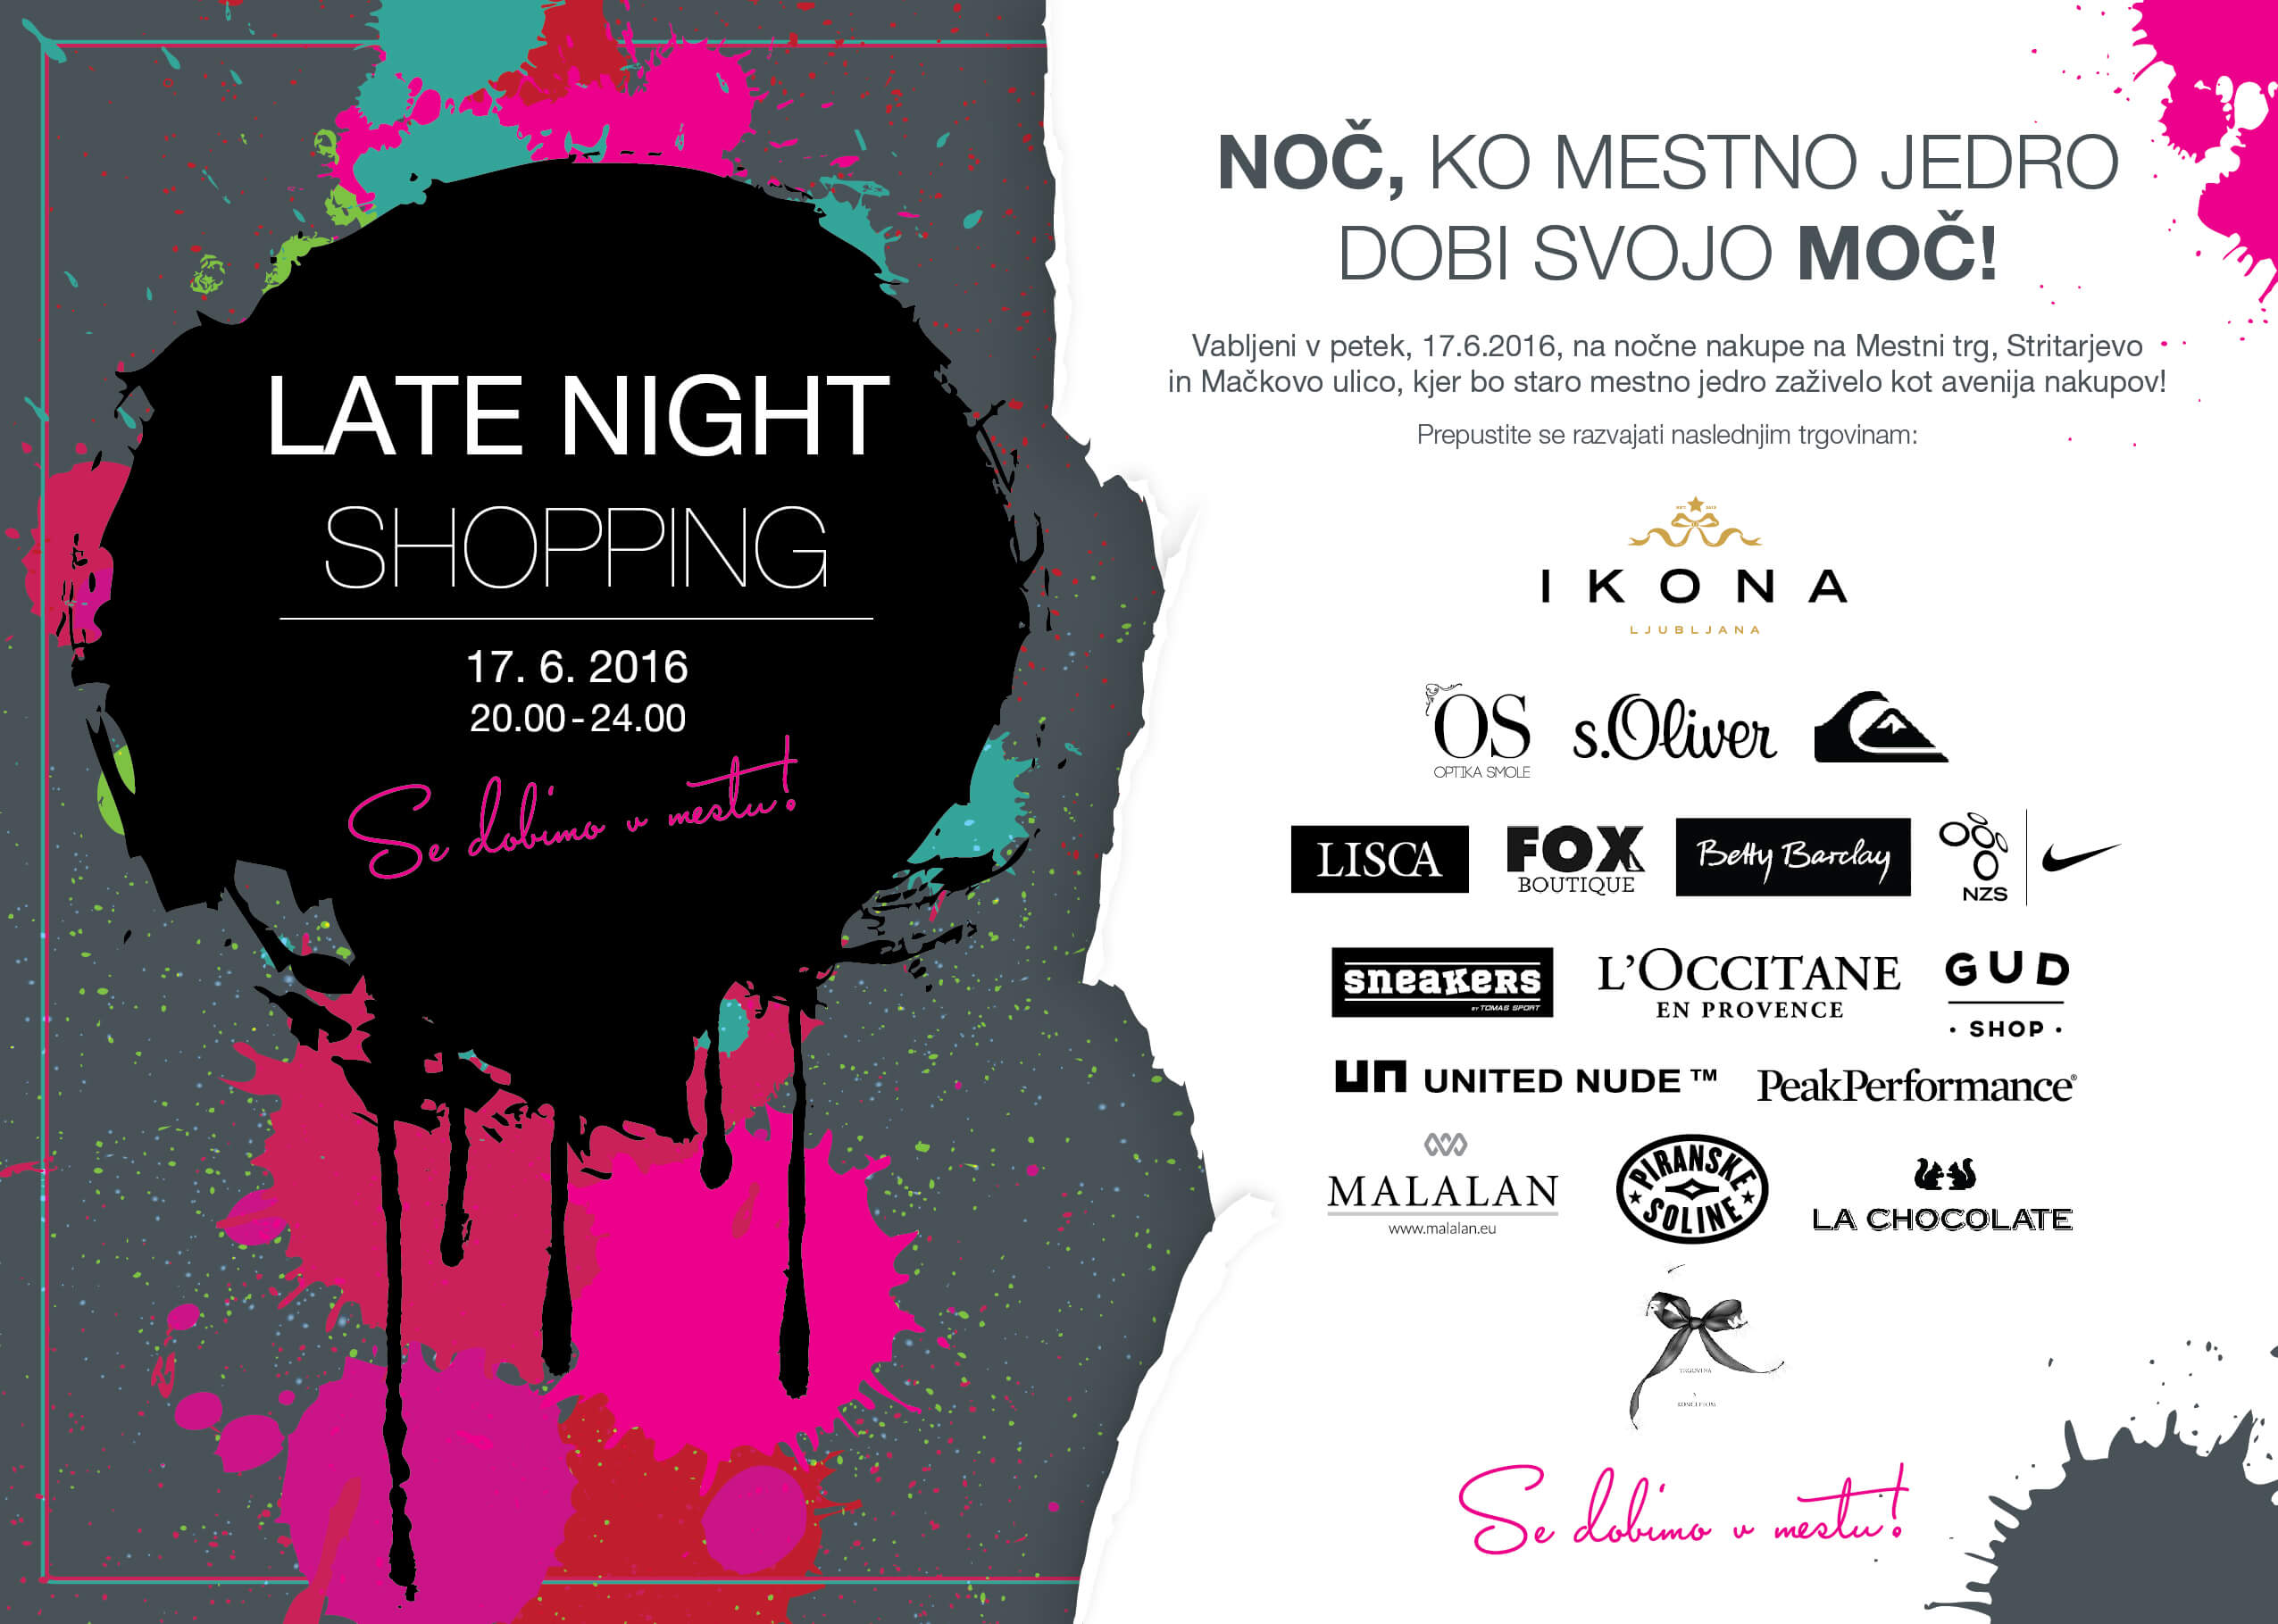 Pentlja Concept Store Late Night Shopping Invitation 2016